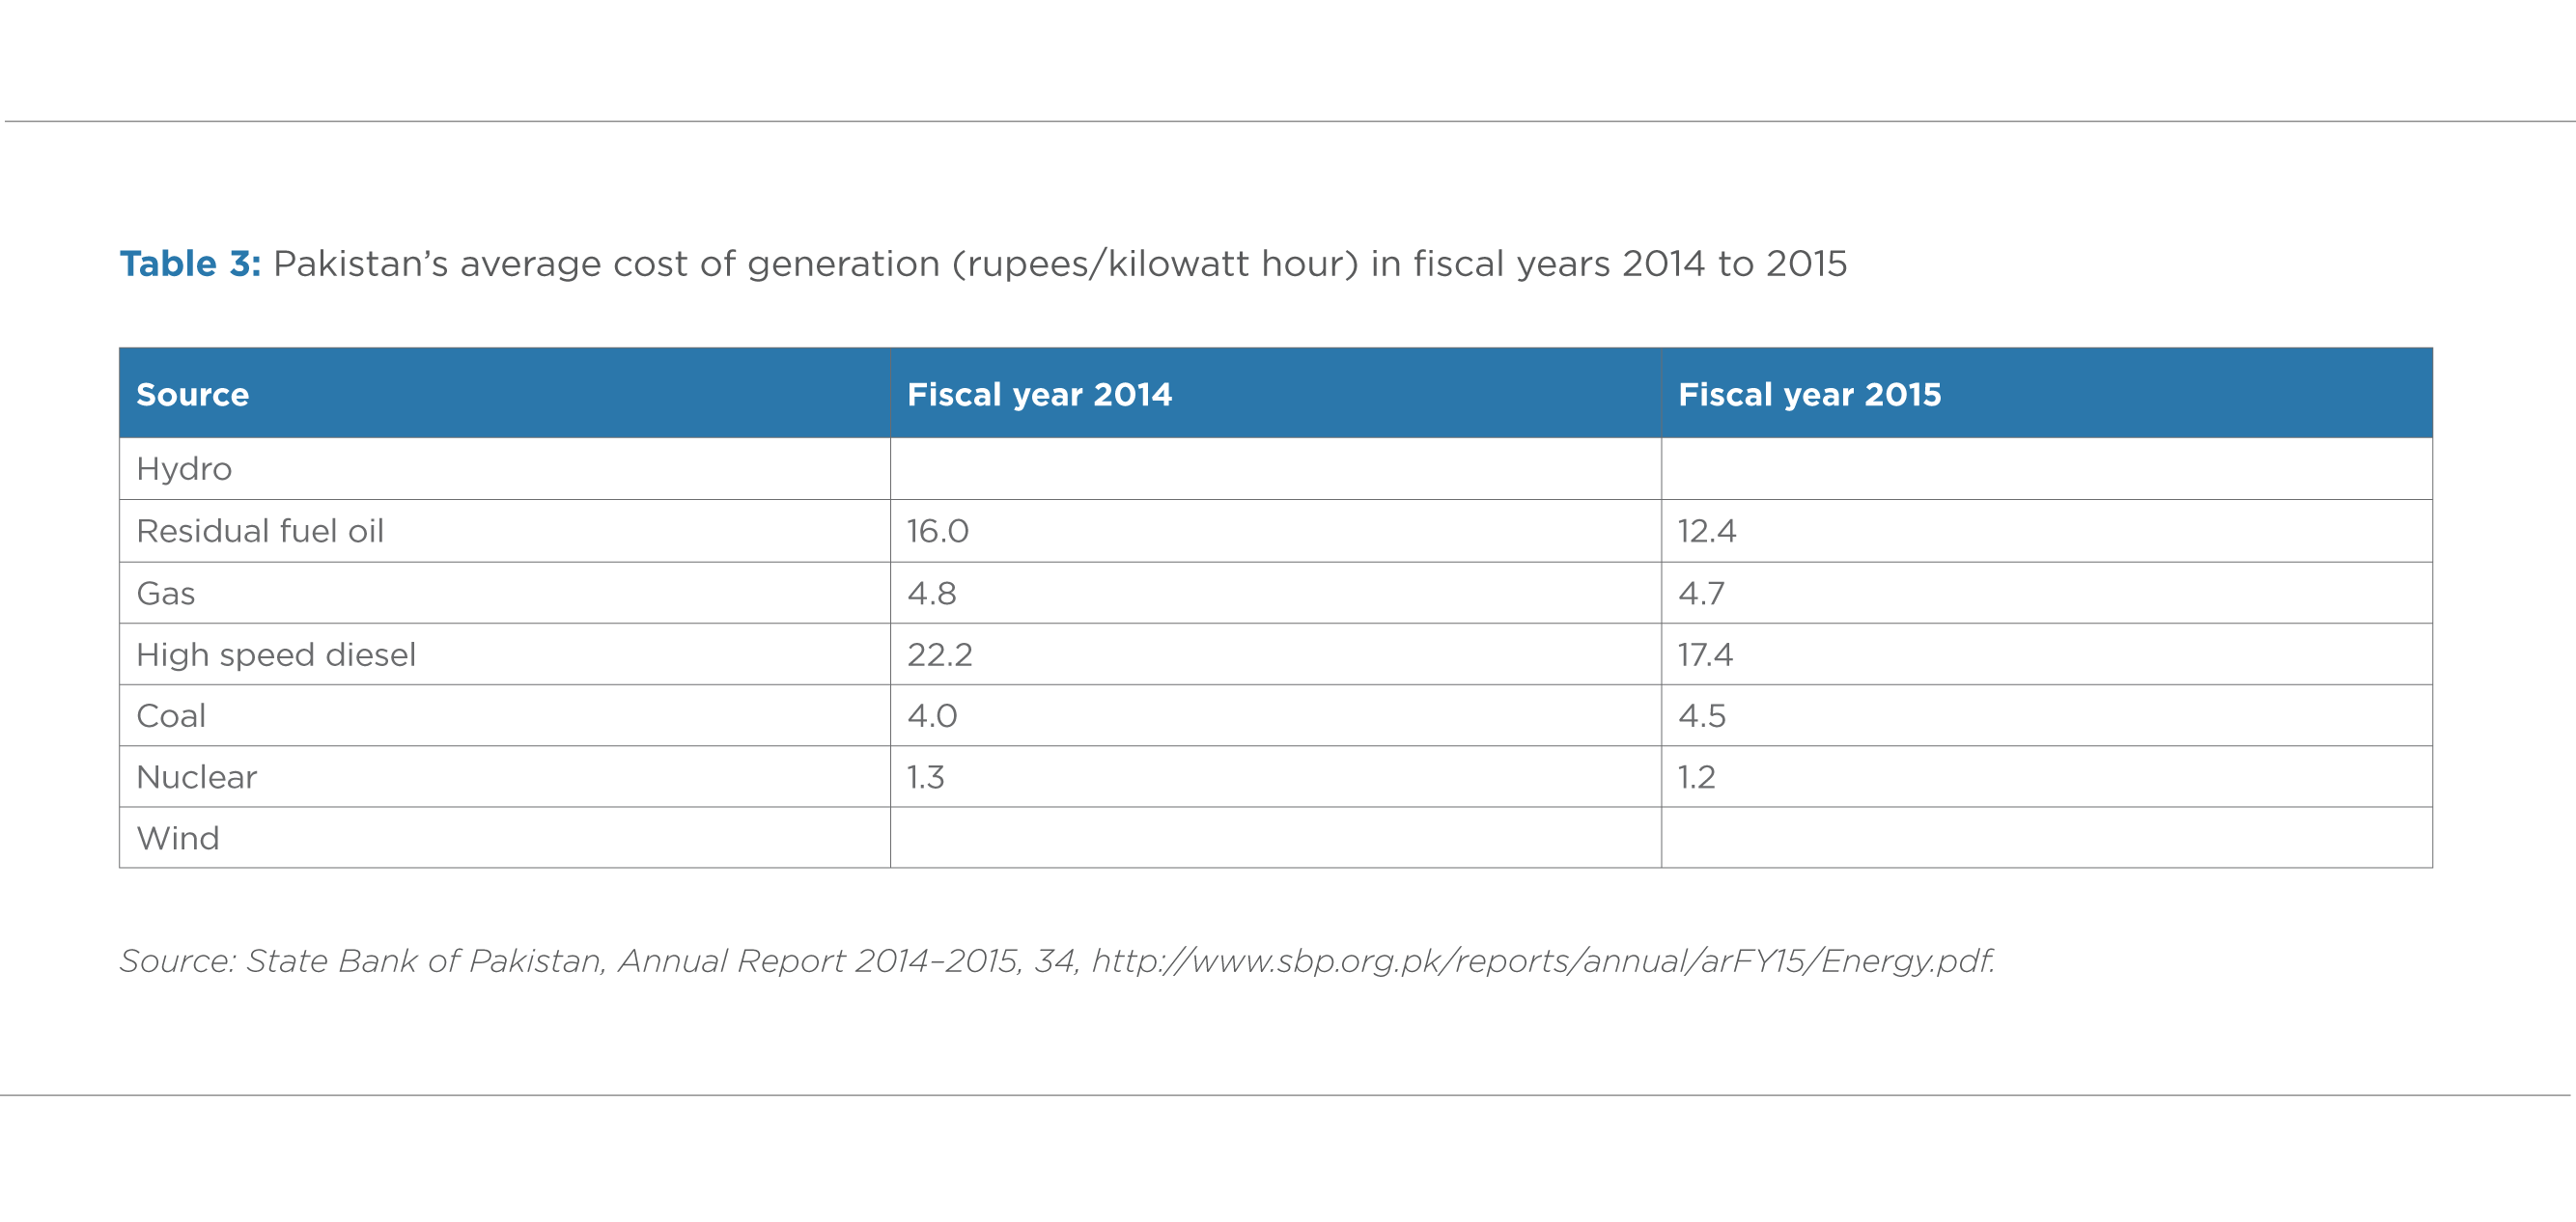 TABLE 3. PAKISTAN'S AVERAGE COST OF GENERATION (RUPEES/KILOWATT HOUR) IN FISCAL YEARS 2014 AND 2015